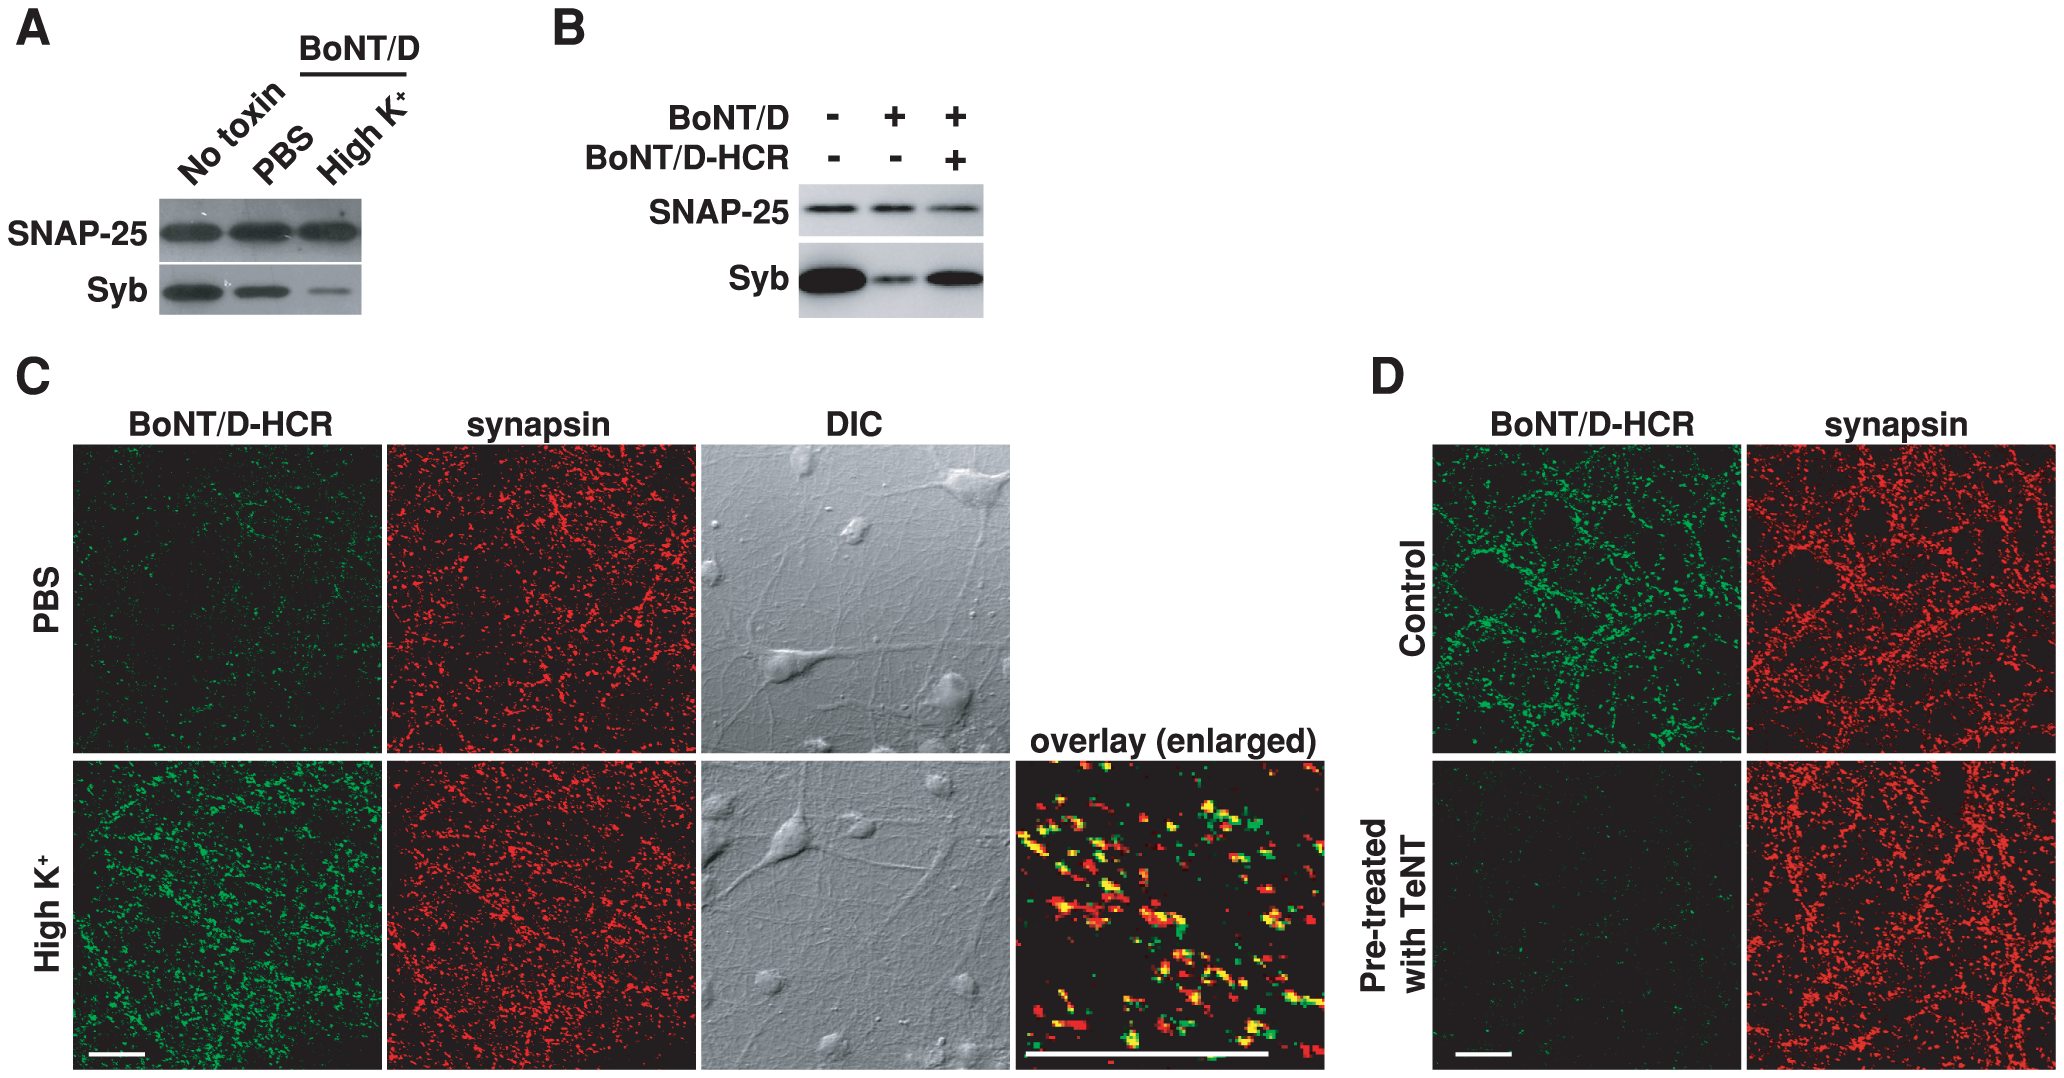 Stimulation of synaptic vesicle recycling increases the binding and entry of BoNT/D into neurons.